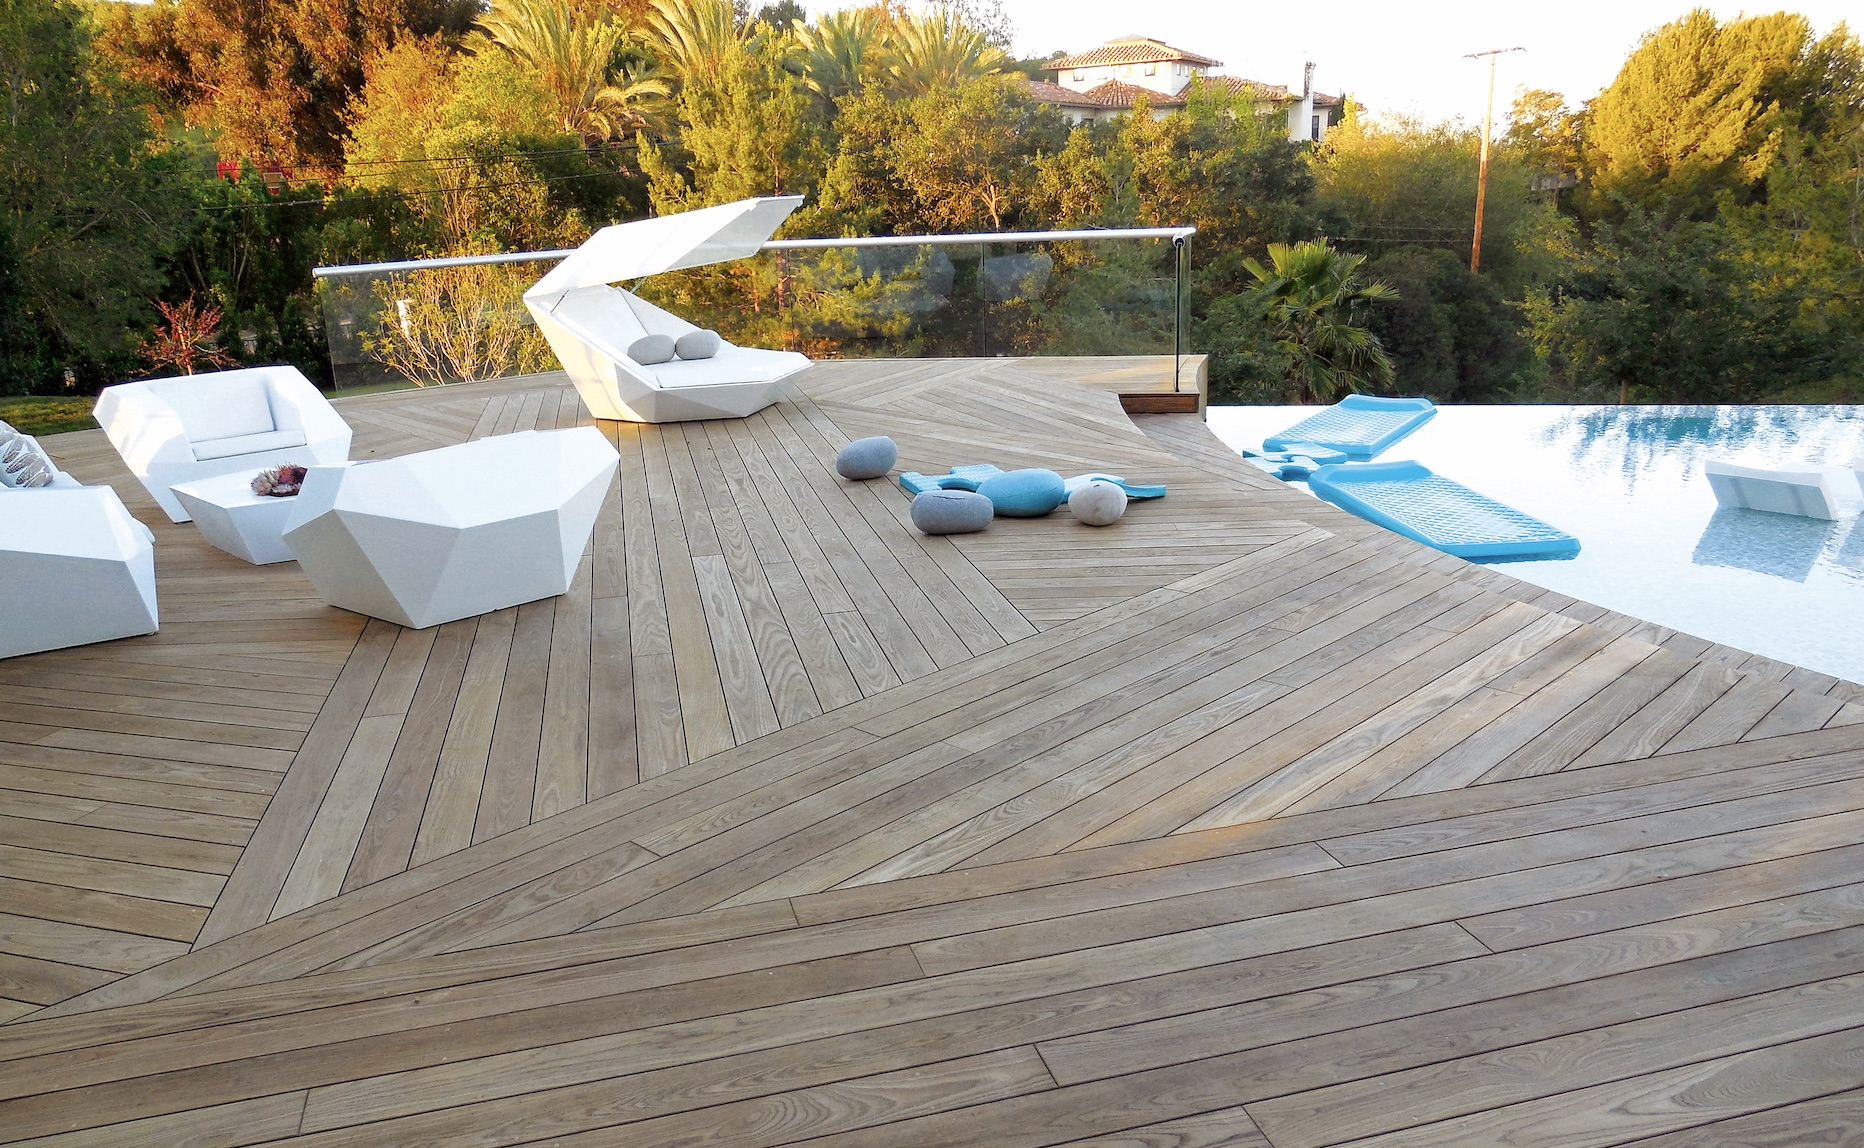 Thermory modified wood ash decking by the pool